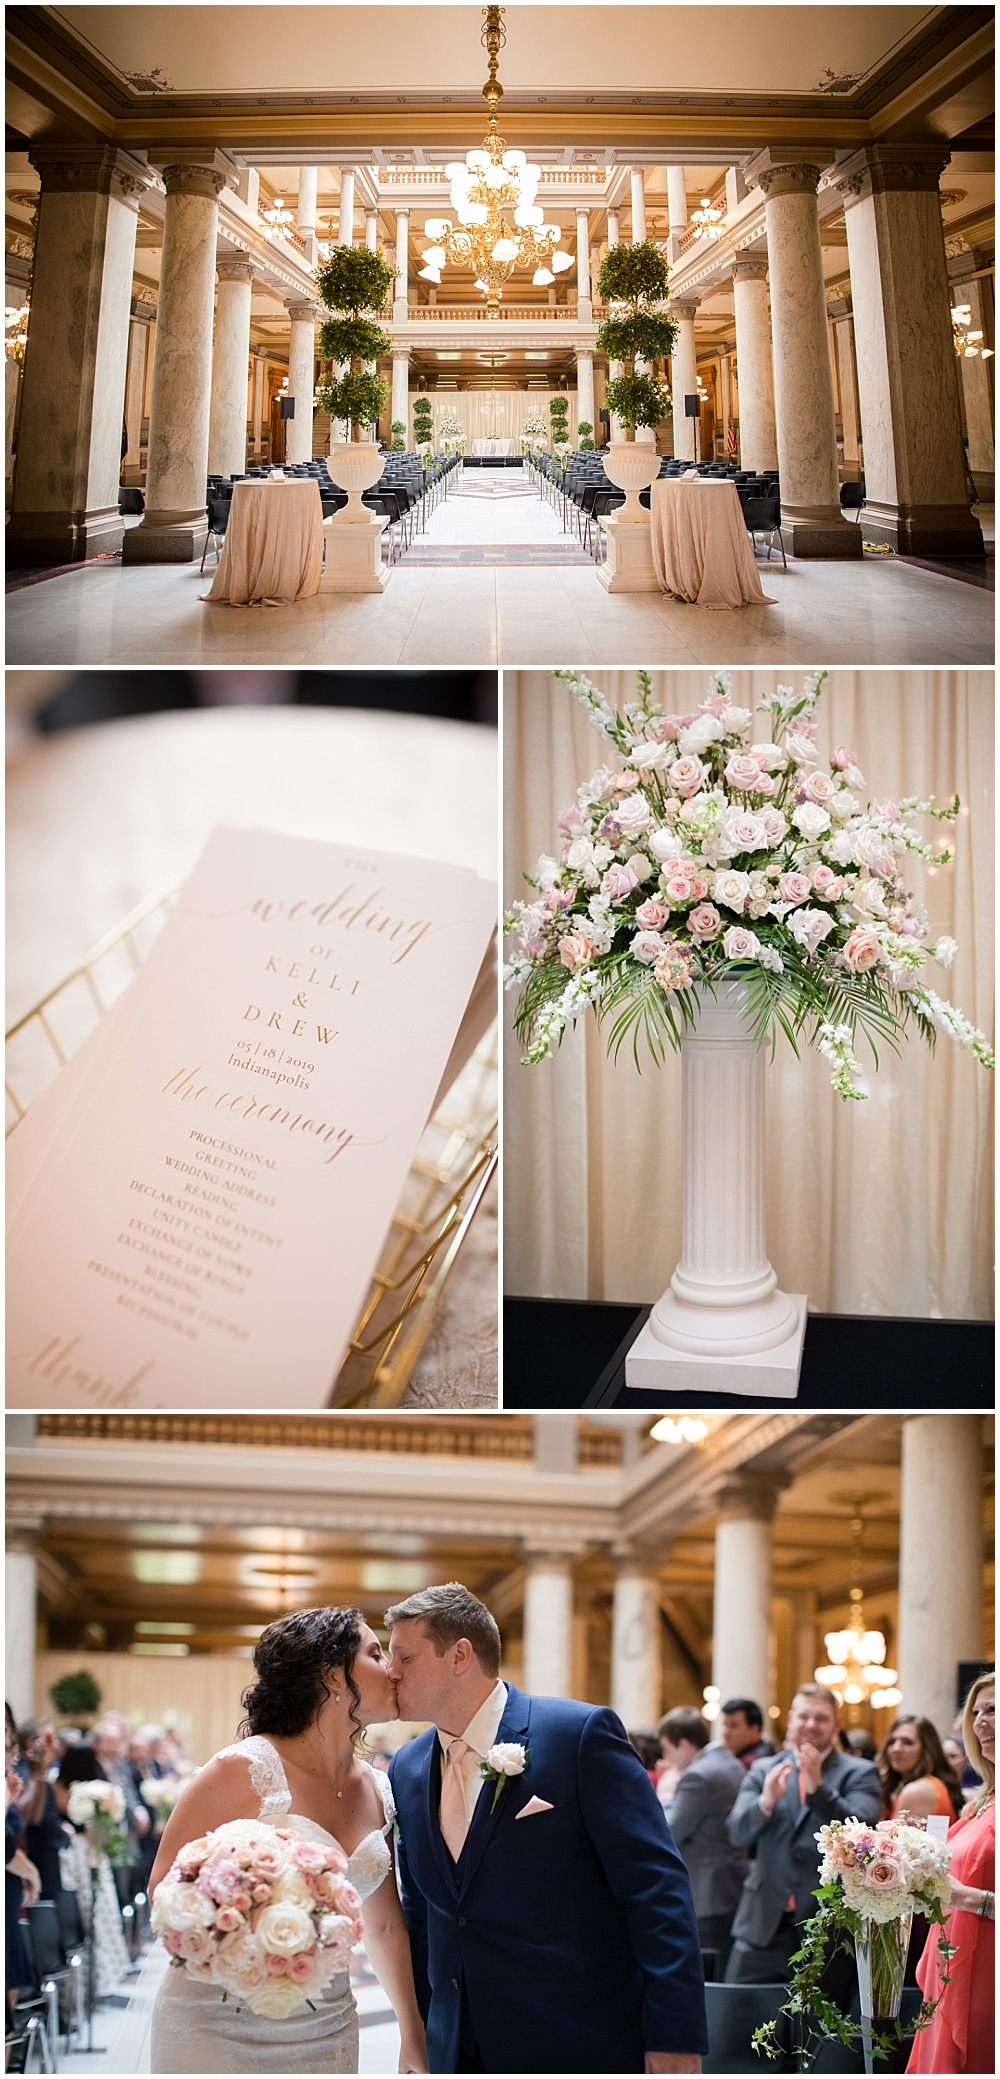 Indiana State House decorated for a blush and gold wedding ceremony.   Spring blush and gold downtown Indianapolis Central Library wedding alongside Evangeline Renee Photography + Jessica Dum Wedding Coordination